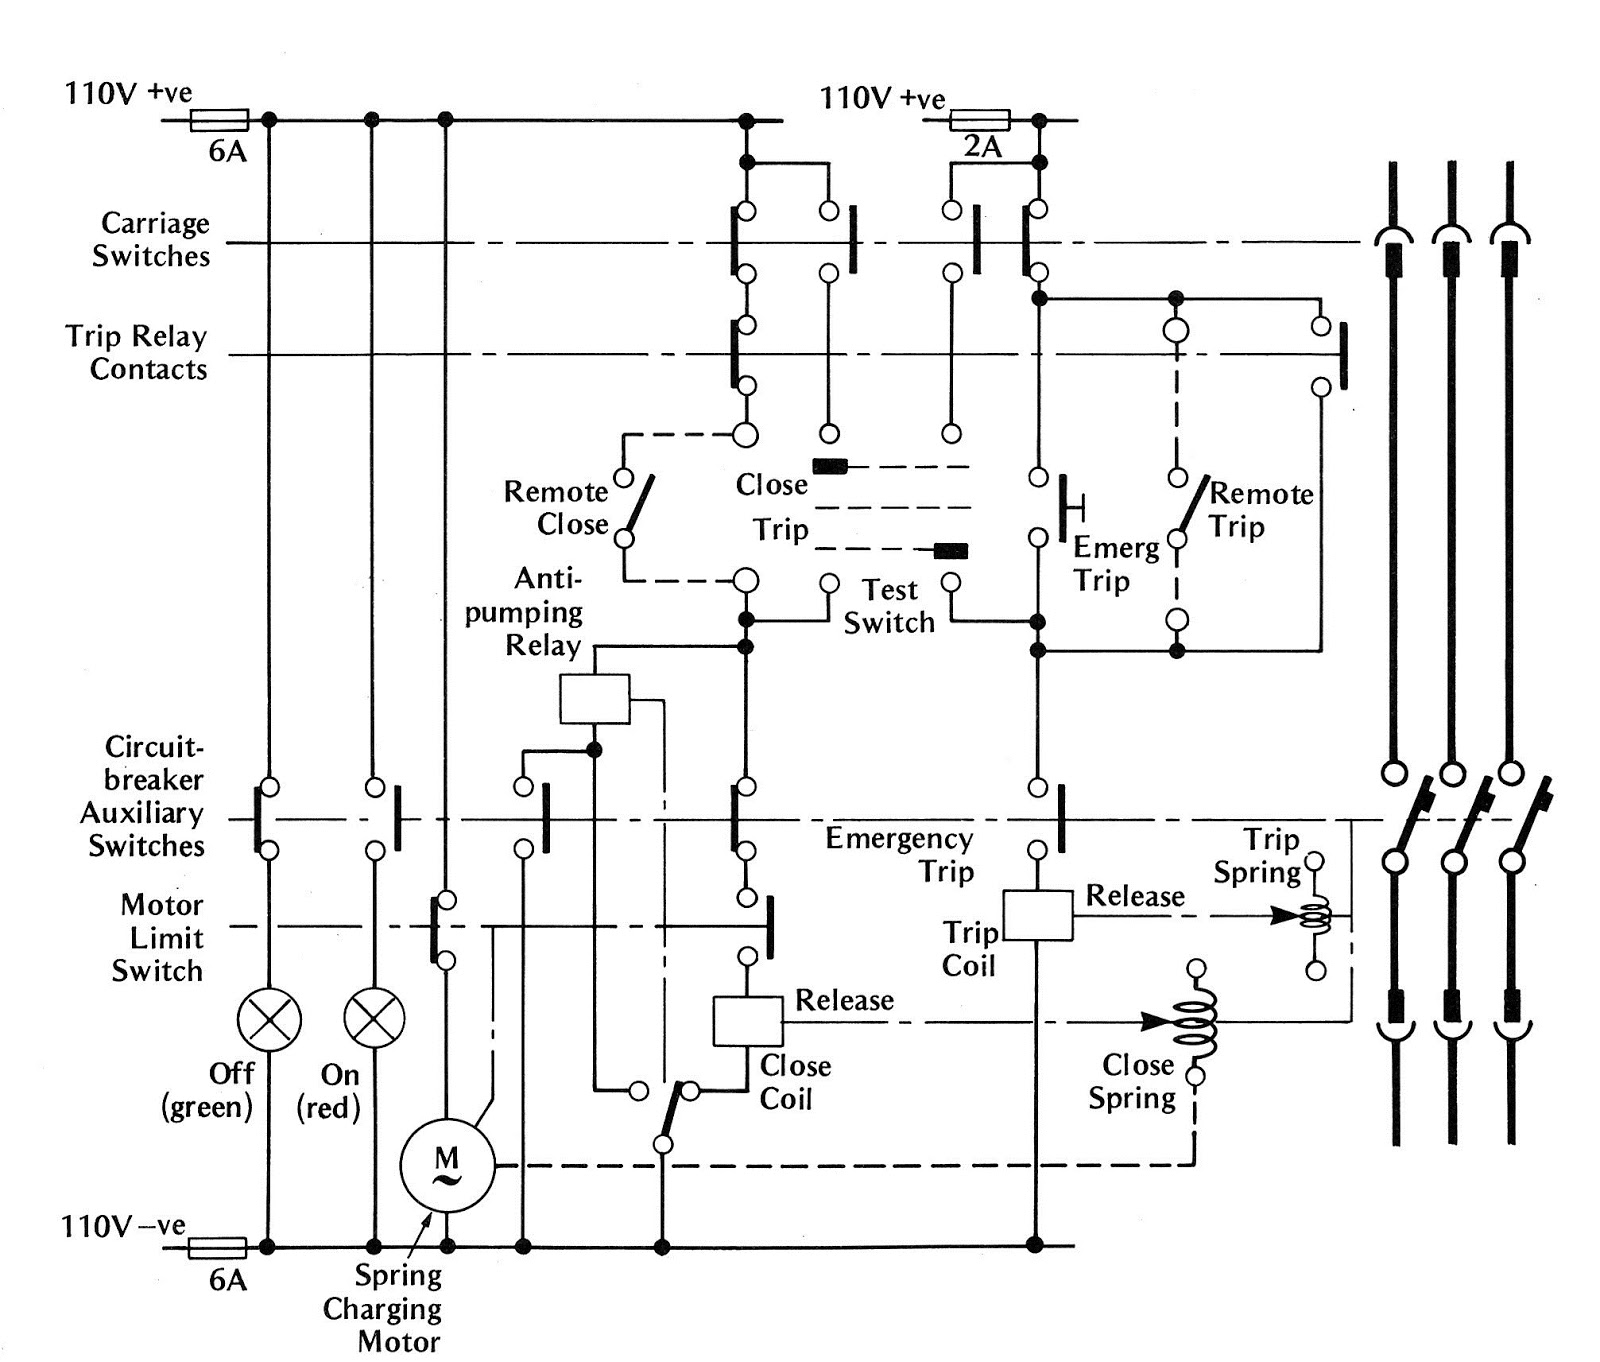 Relay Controlled Circuit Breaker Relaycontrol Controlcircuit Diagram Seekic Engineering Photosvideos And Articels Search Engine